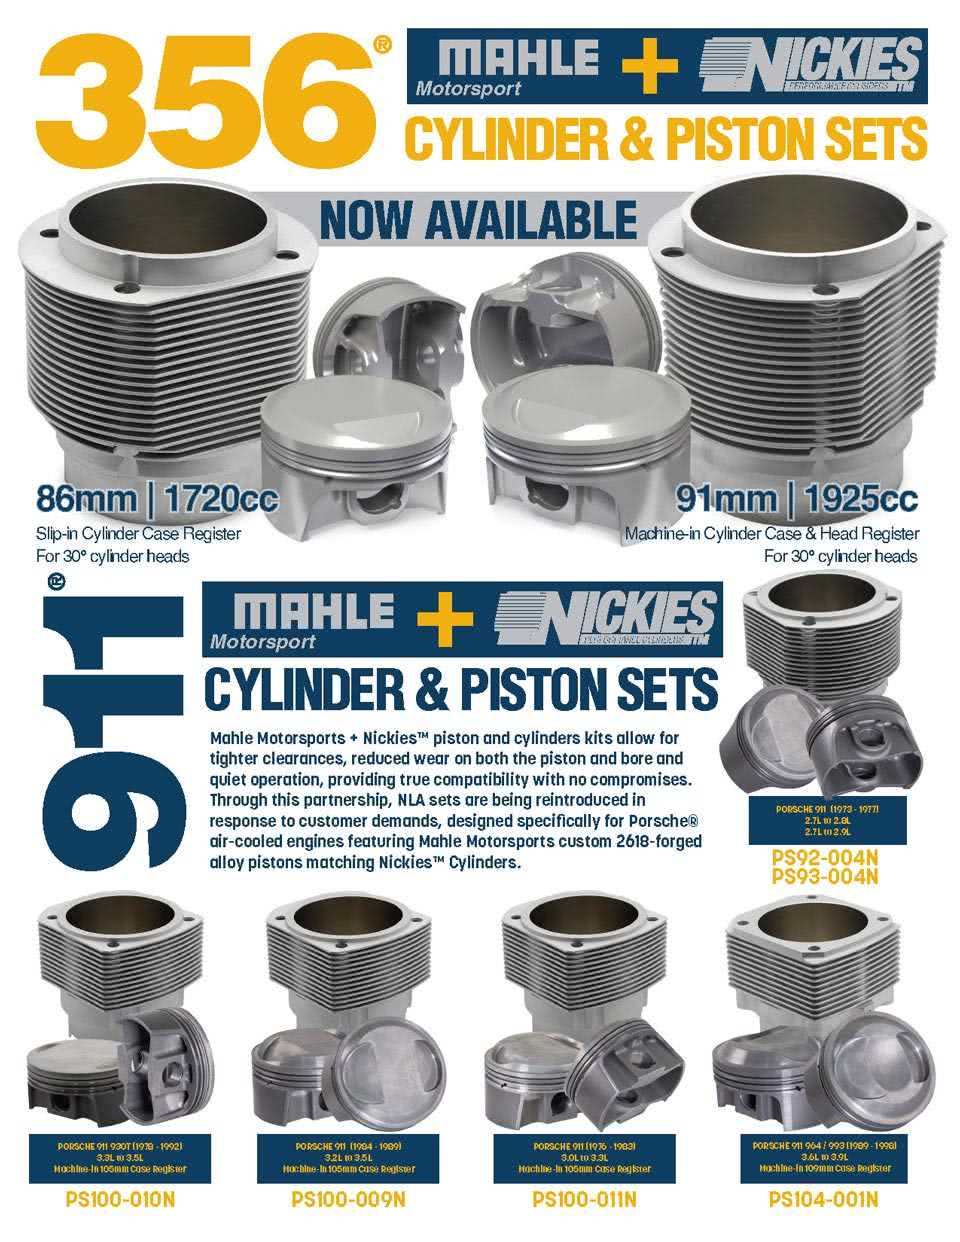 356 Cylinder and Piston Sets